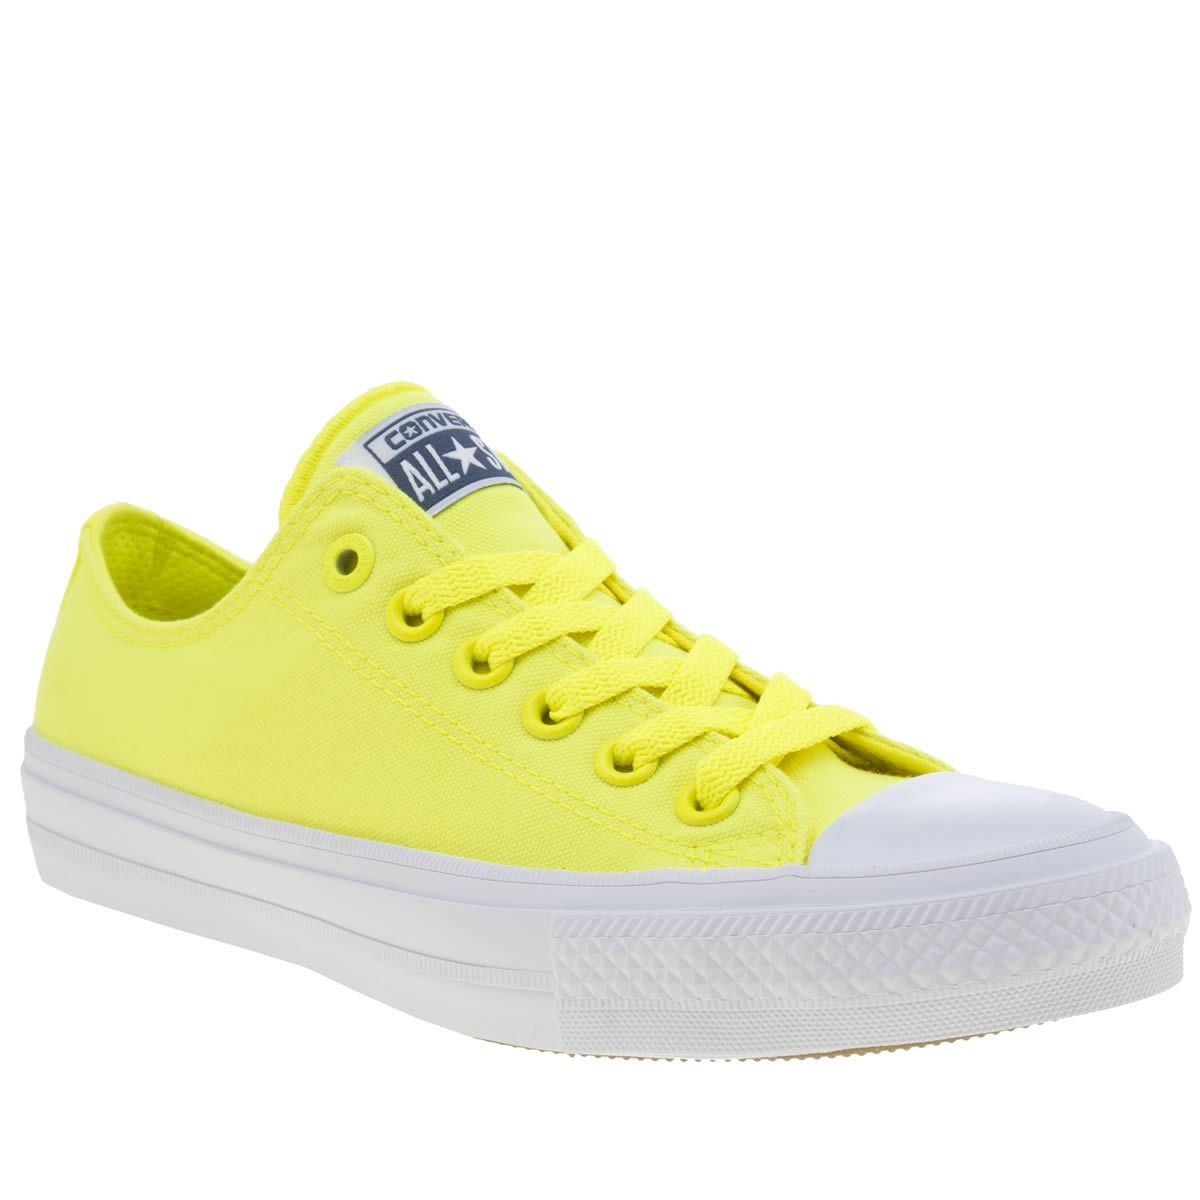 womens converse yellow chuck taylor all star ii neon trainers